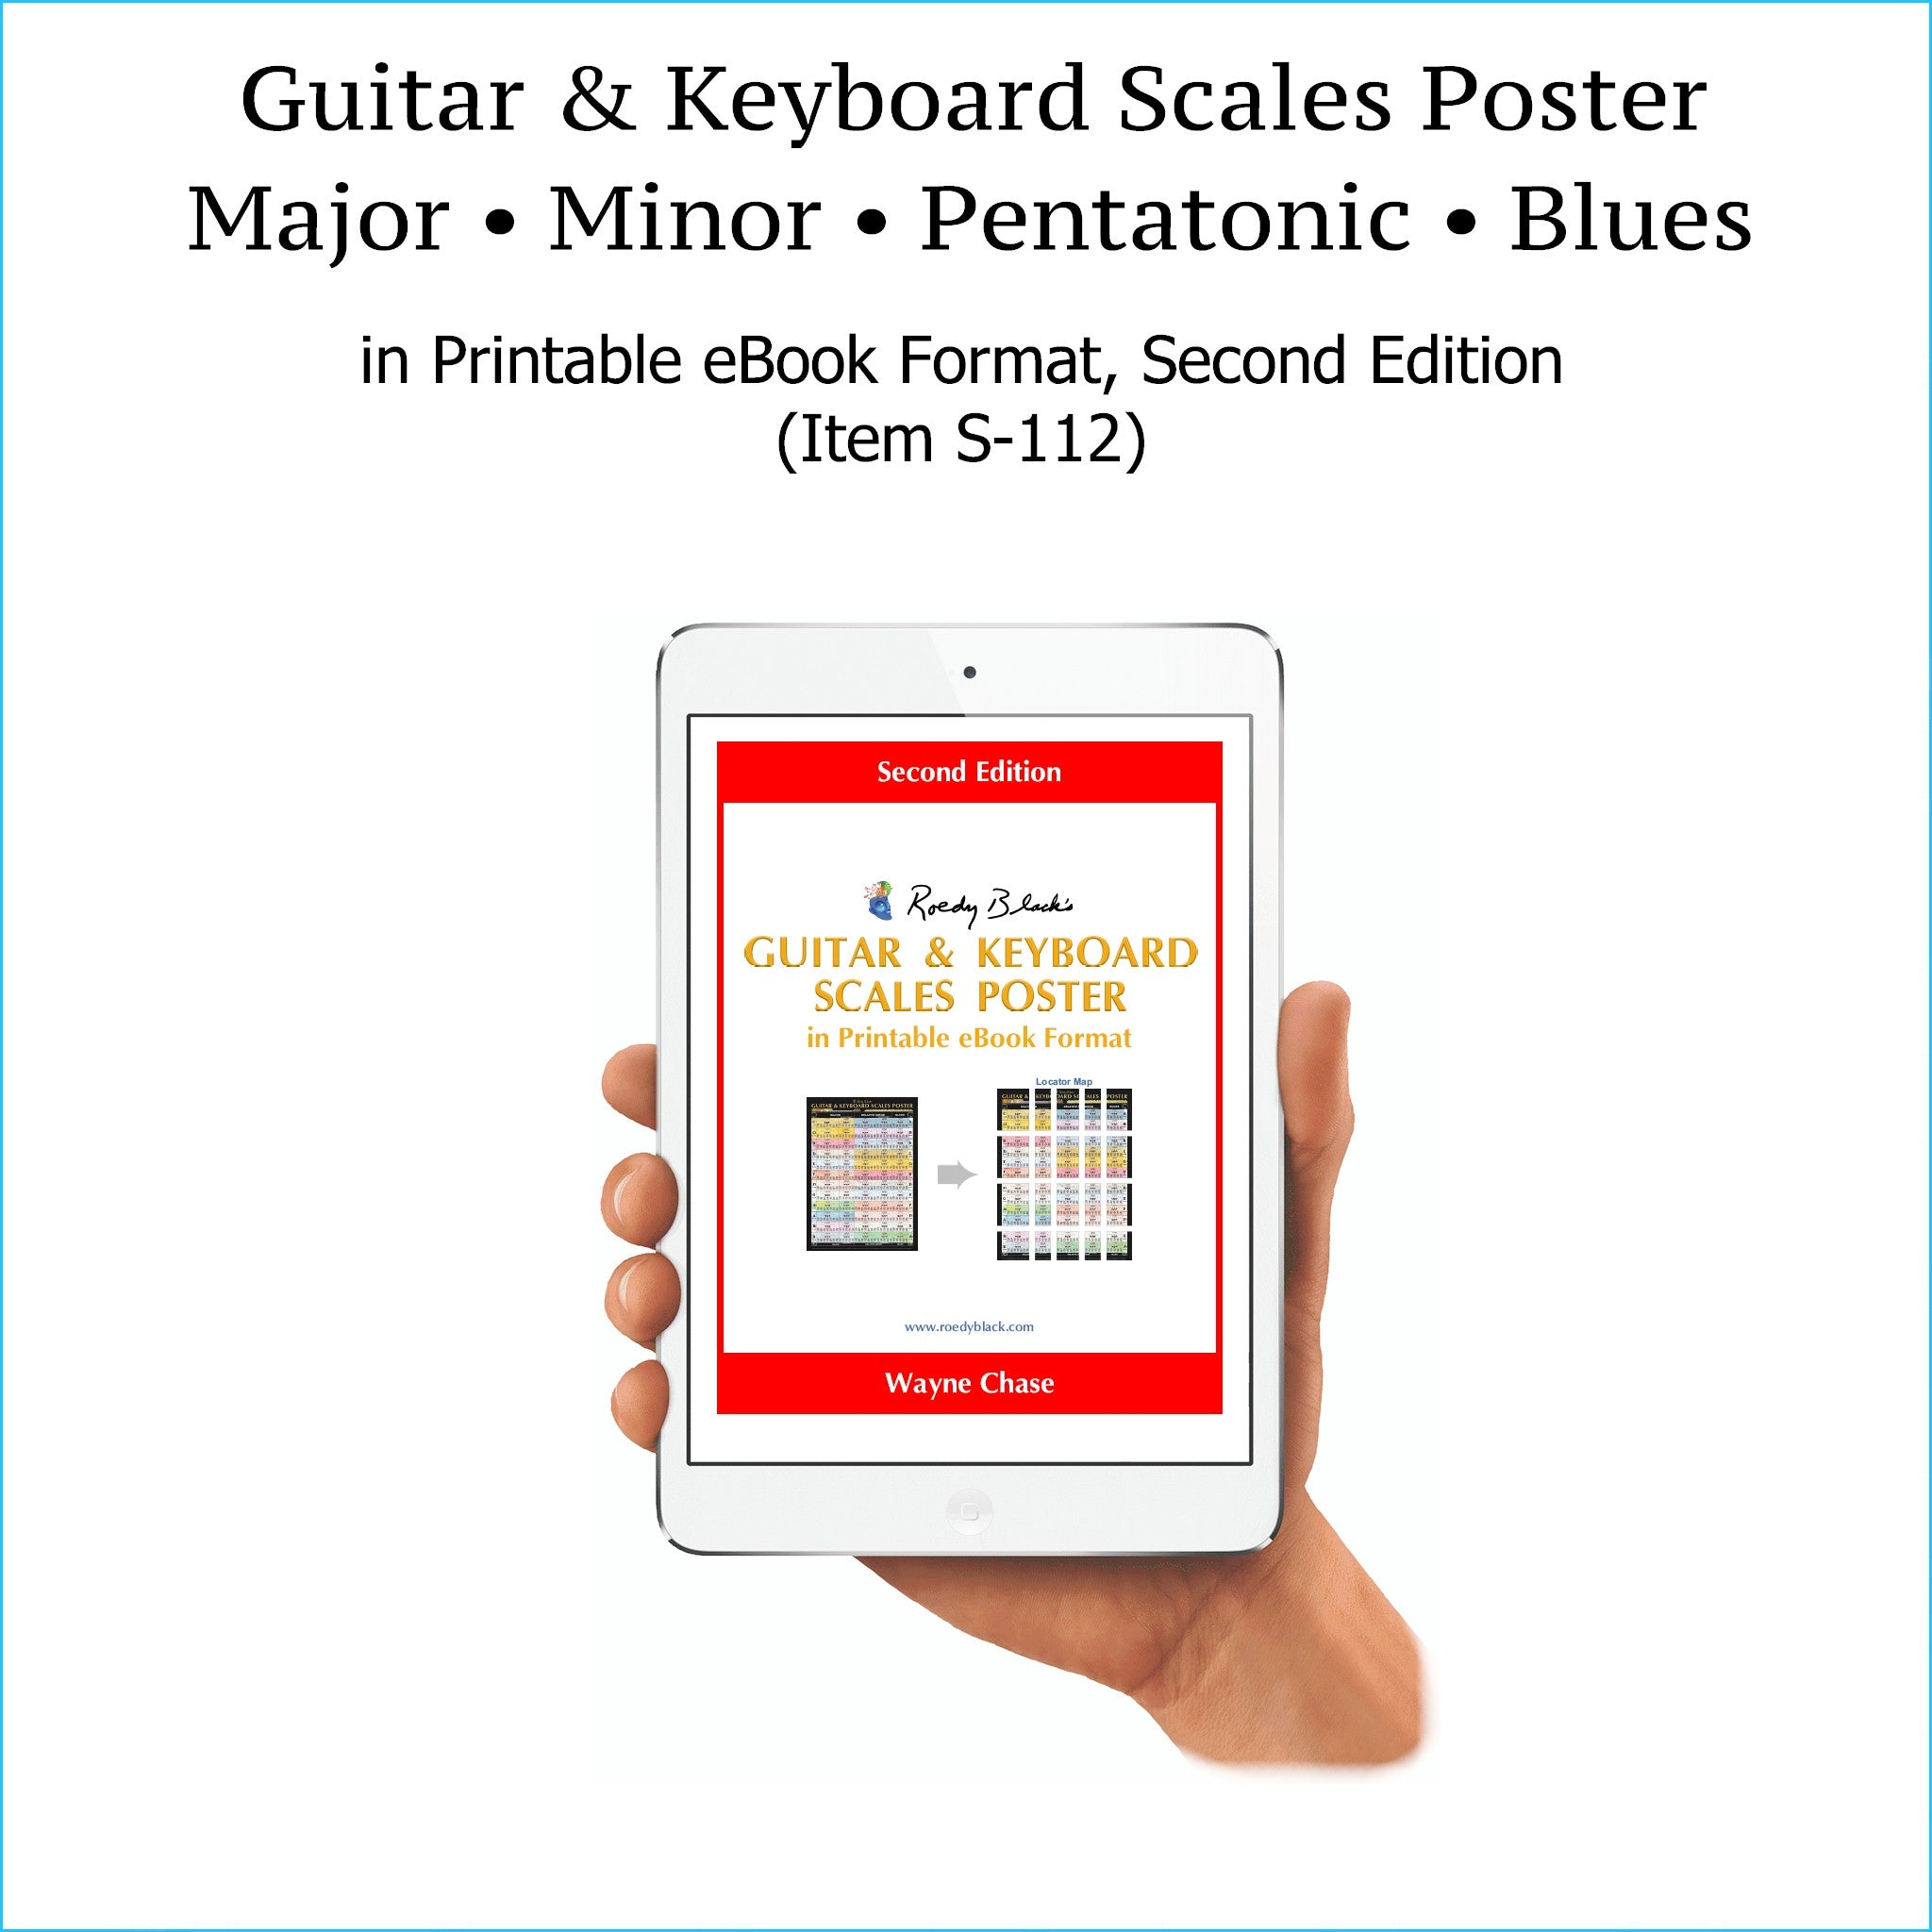 Guitar and keyboard scales poster in printable ebook format, second edition.